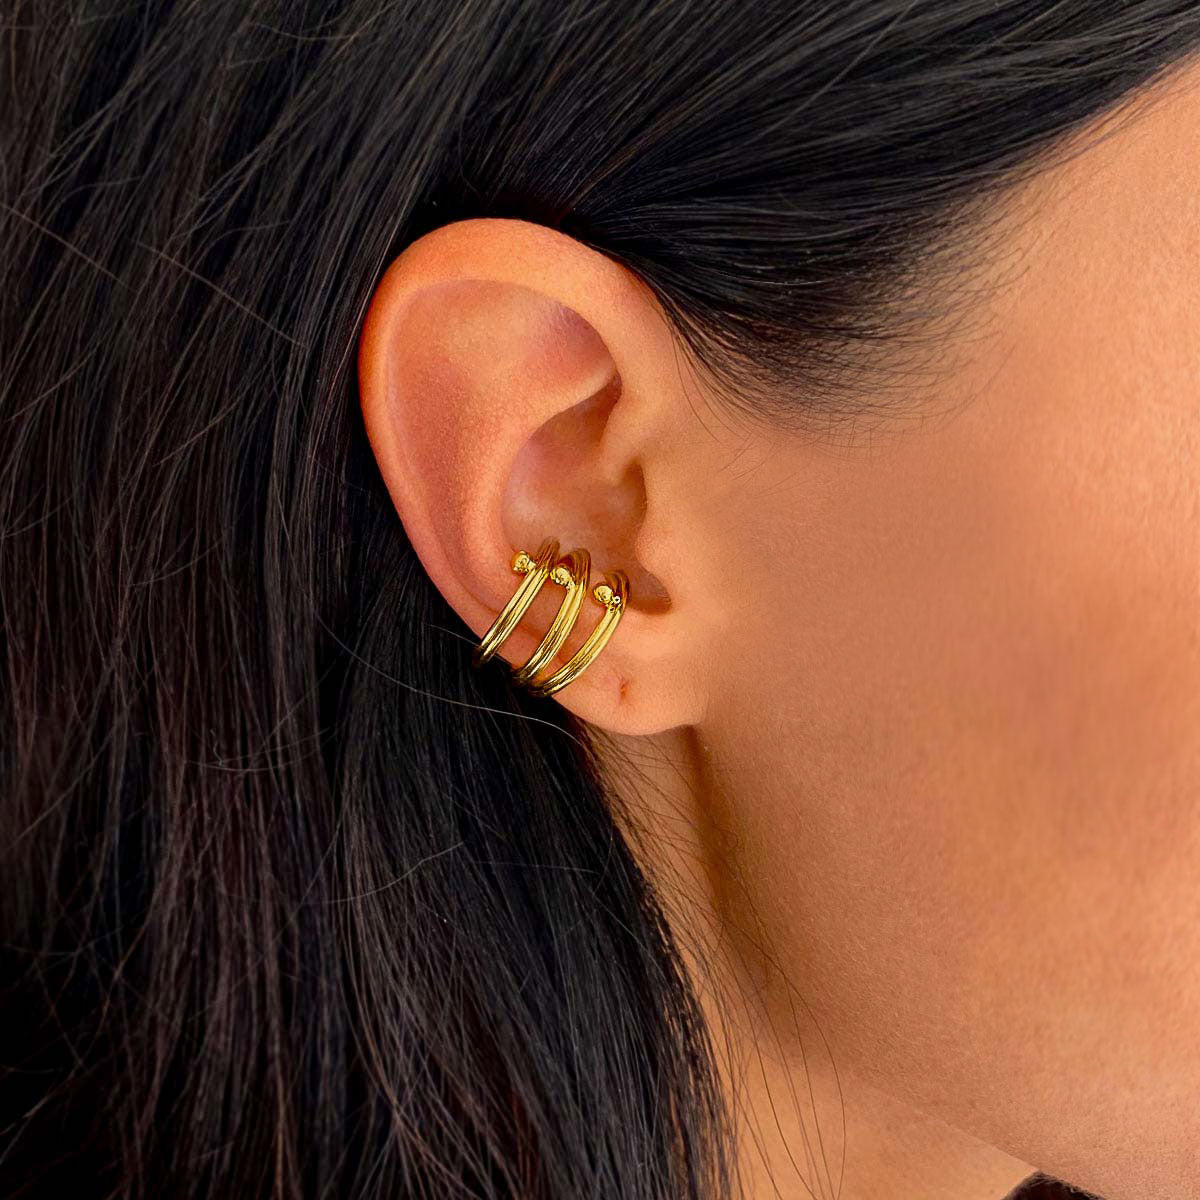 ear cuffs silver gold vermeil made by artisans colombian jewelry